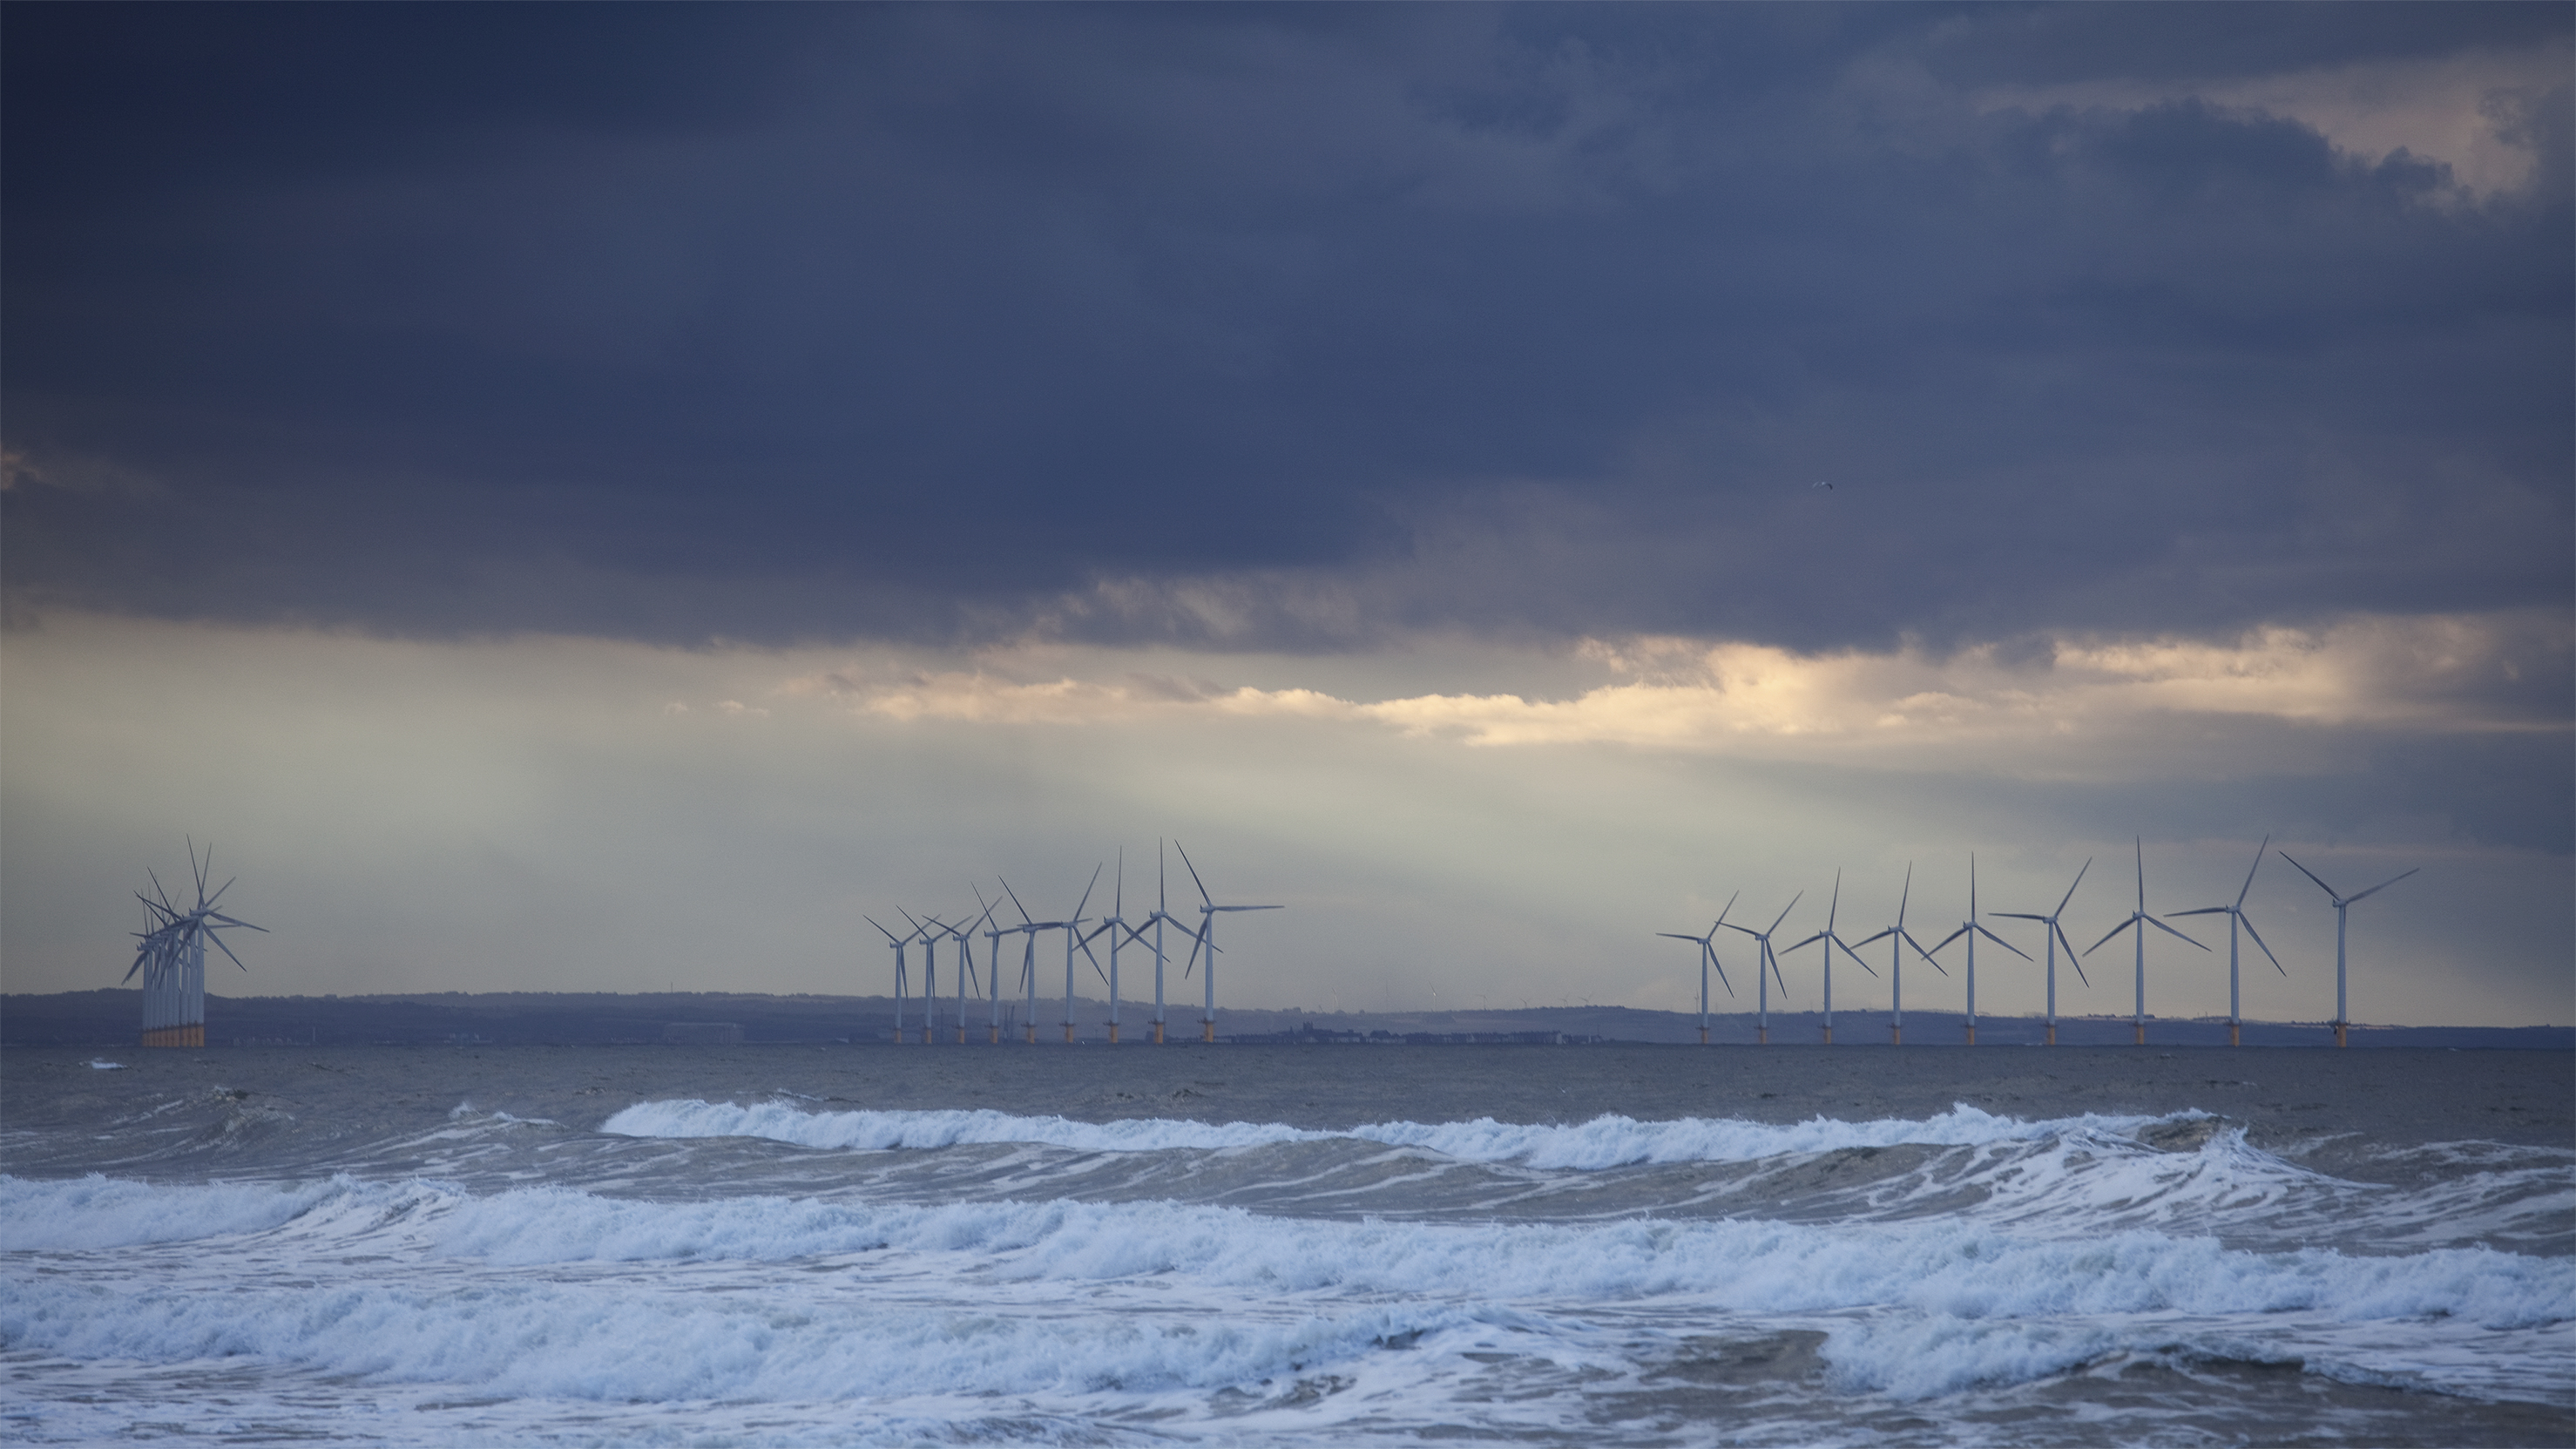 windturbines england sea renewables storm